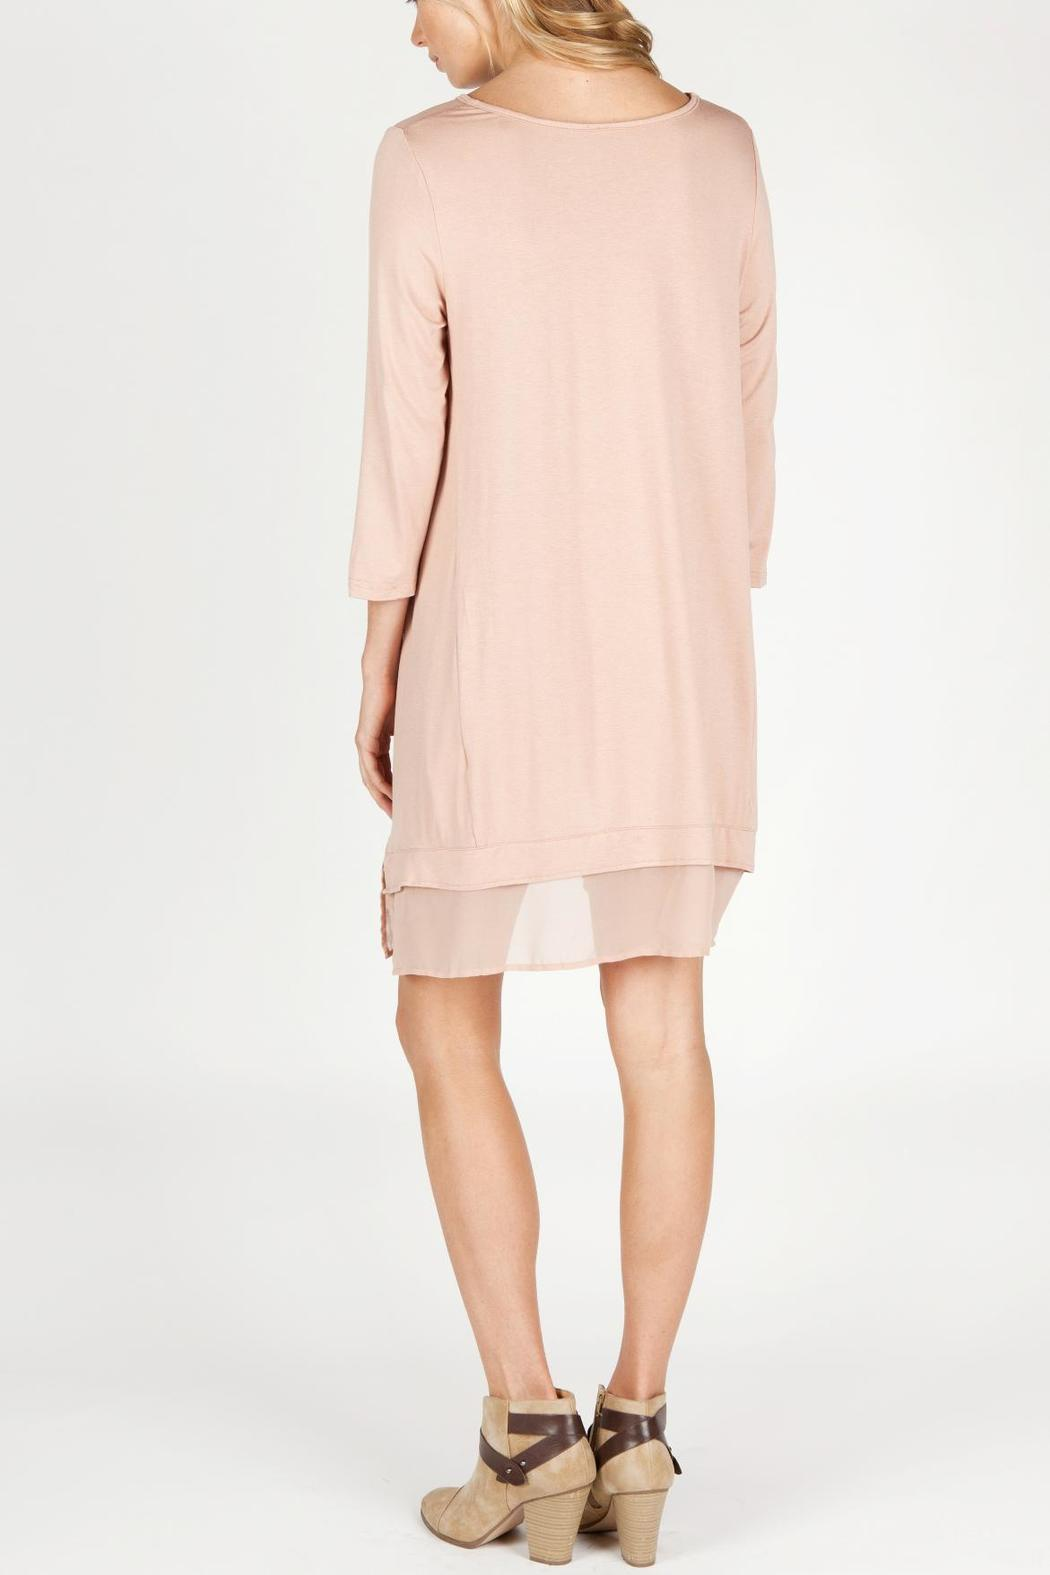 Monoreno Silky Pale Tunic - Front Full Image